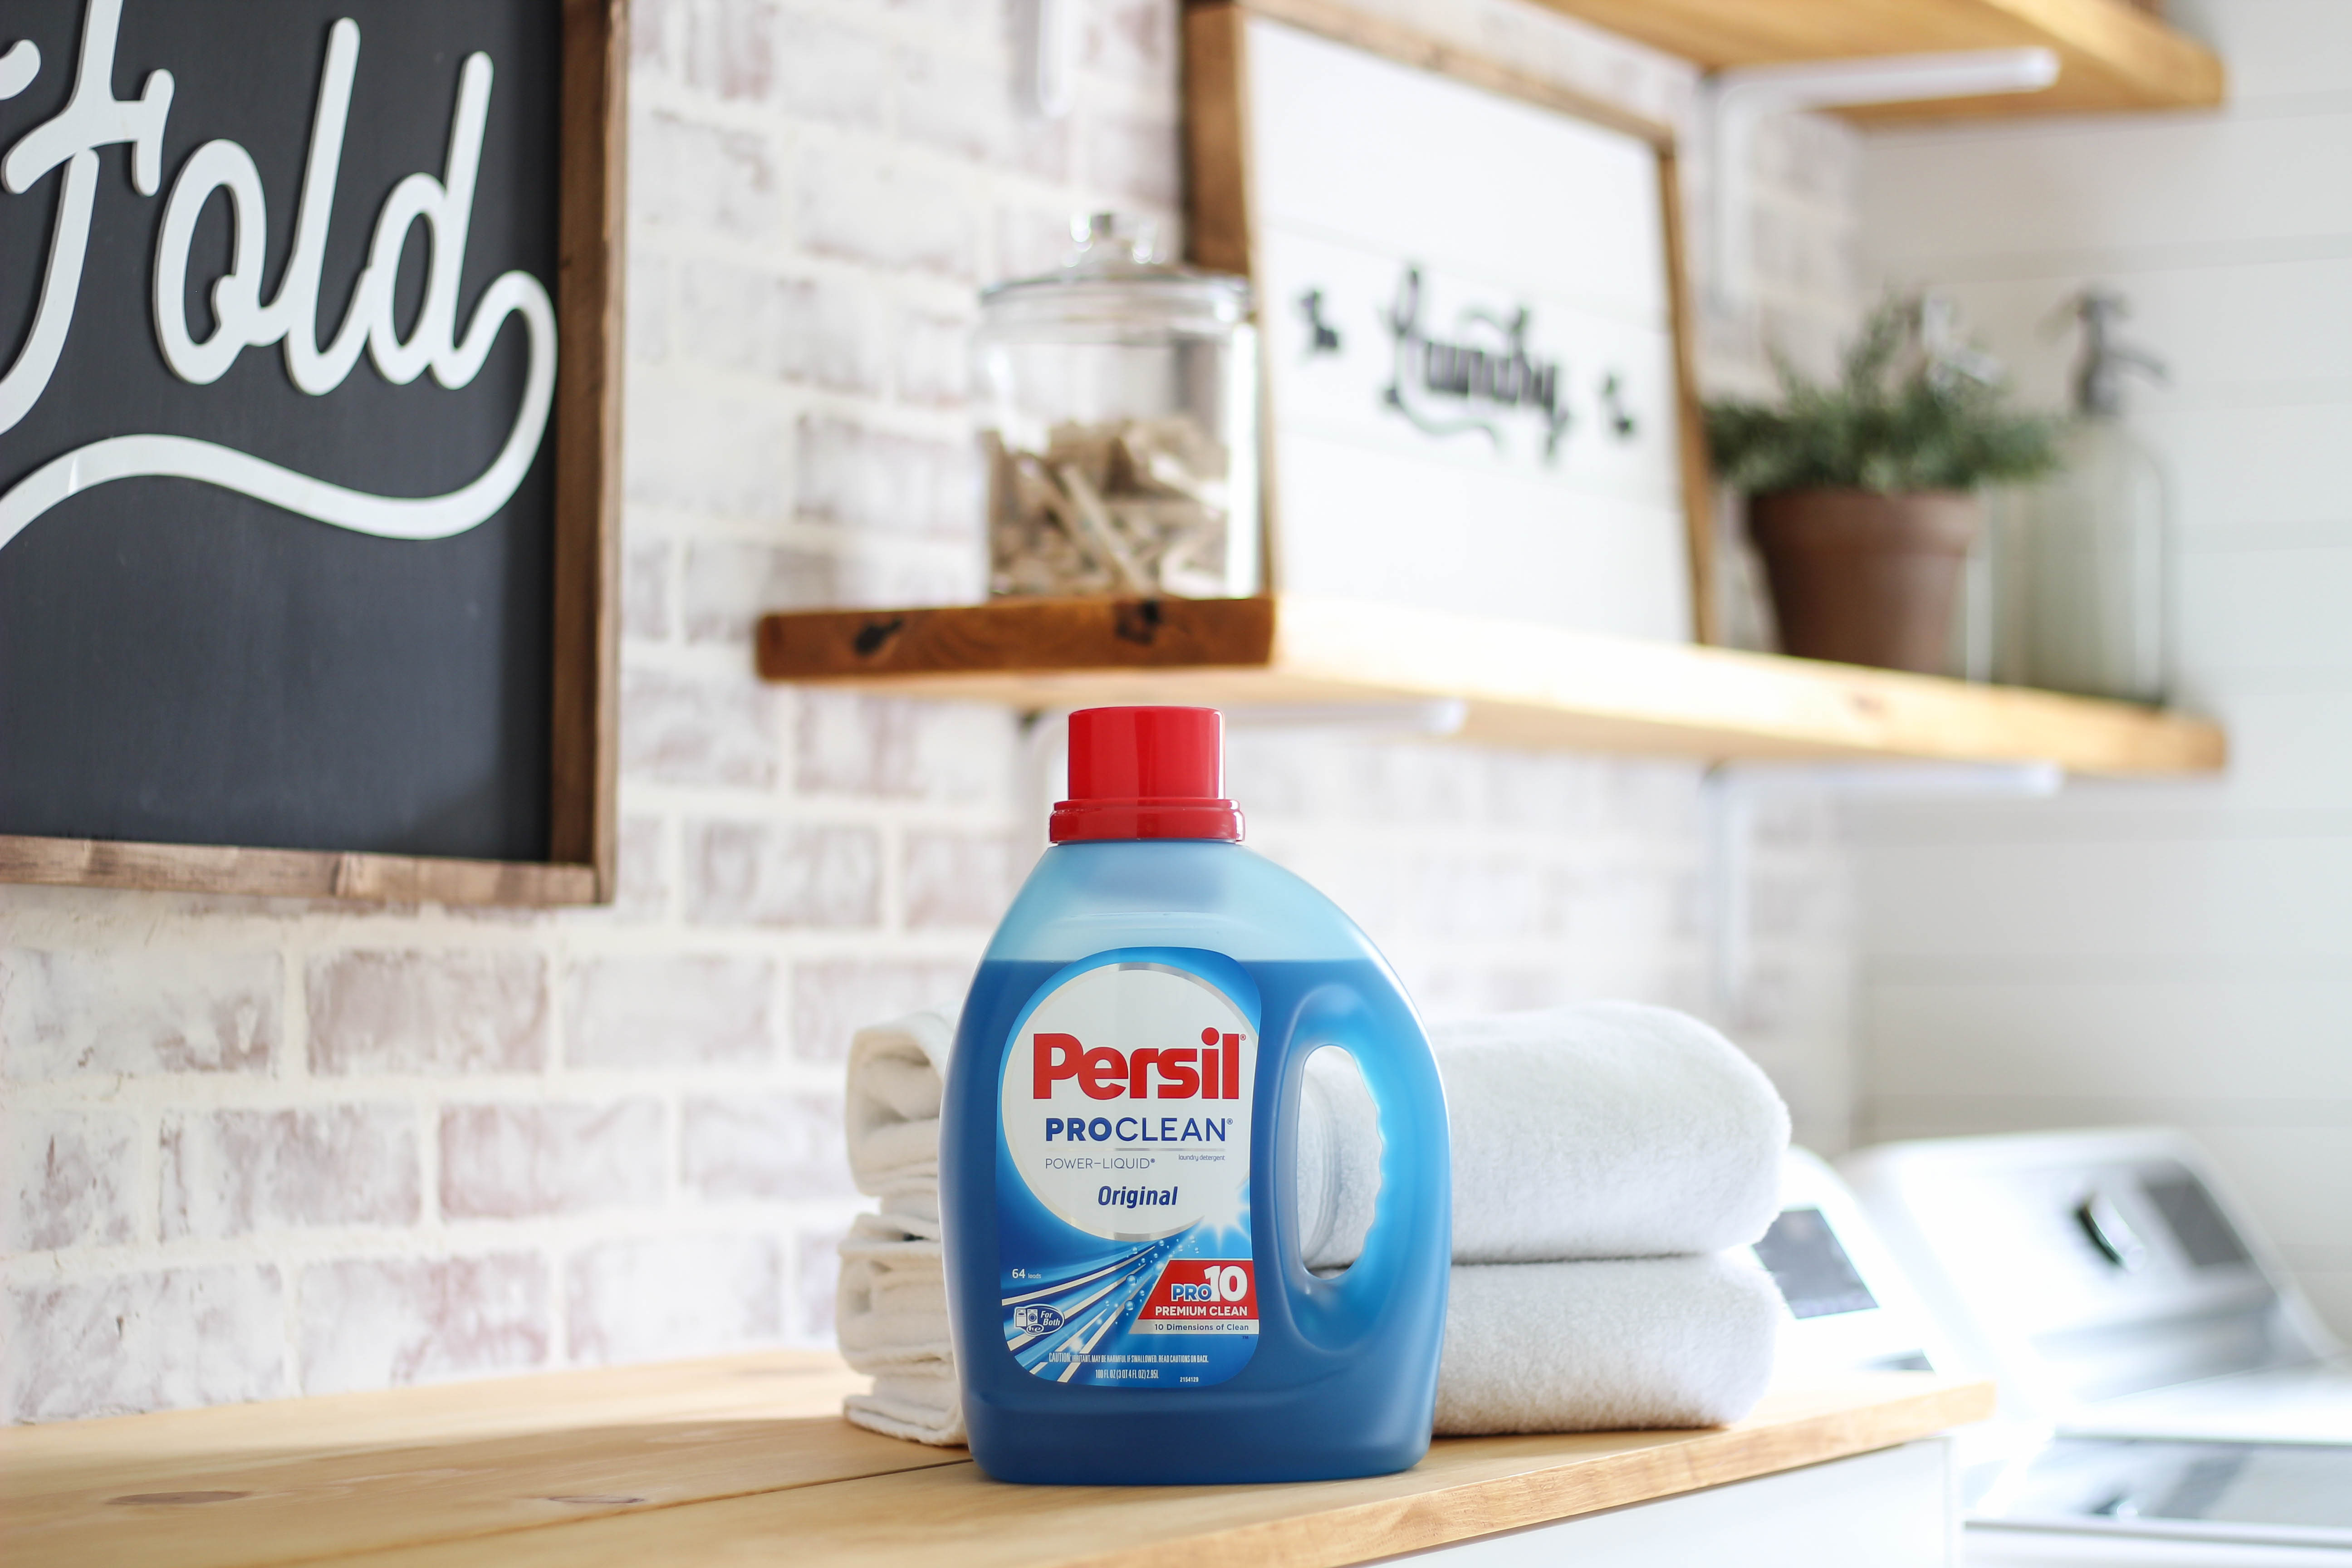 Learn why this mom of 3 never has to do a load of laundry. Plus get 6 laundry hacks to keep your towels bright white & smelling fresh. #shop #PersilLaundry